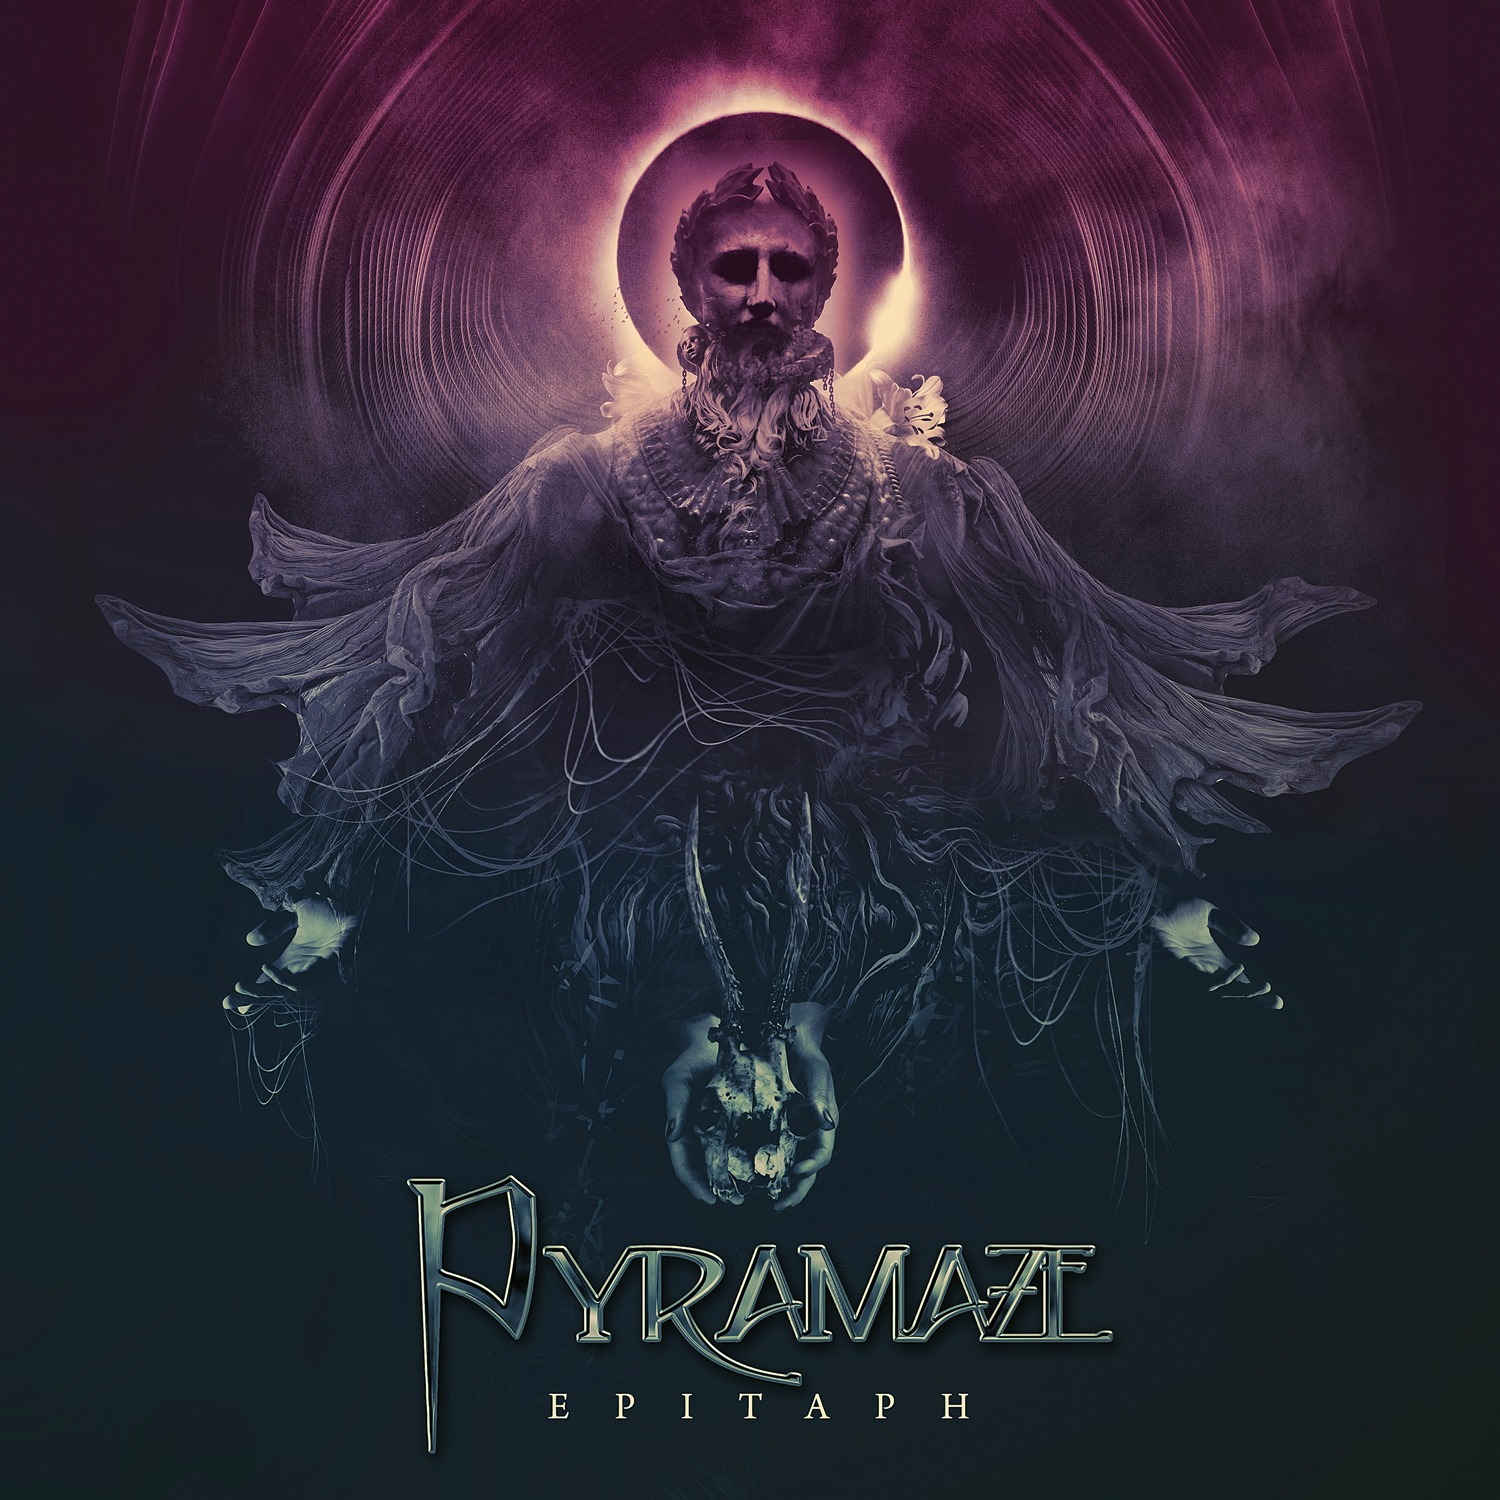 Pyramaze Epitaph Cover Art